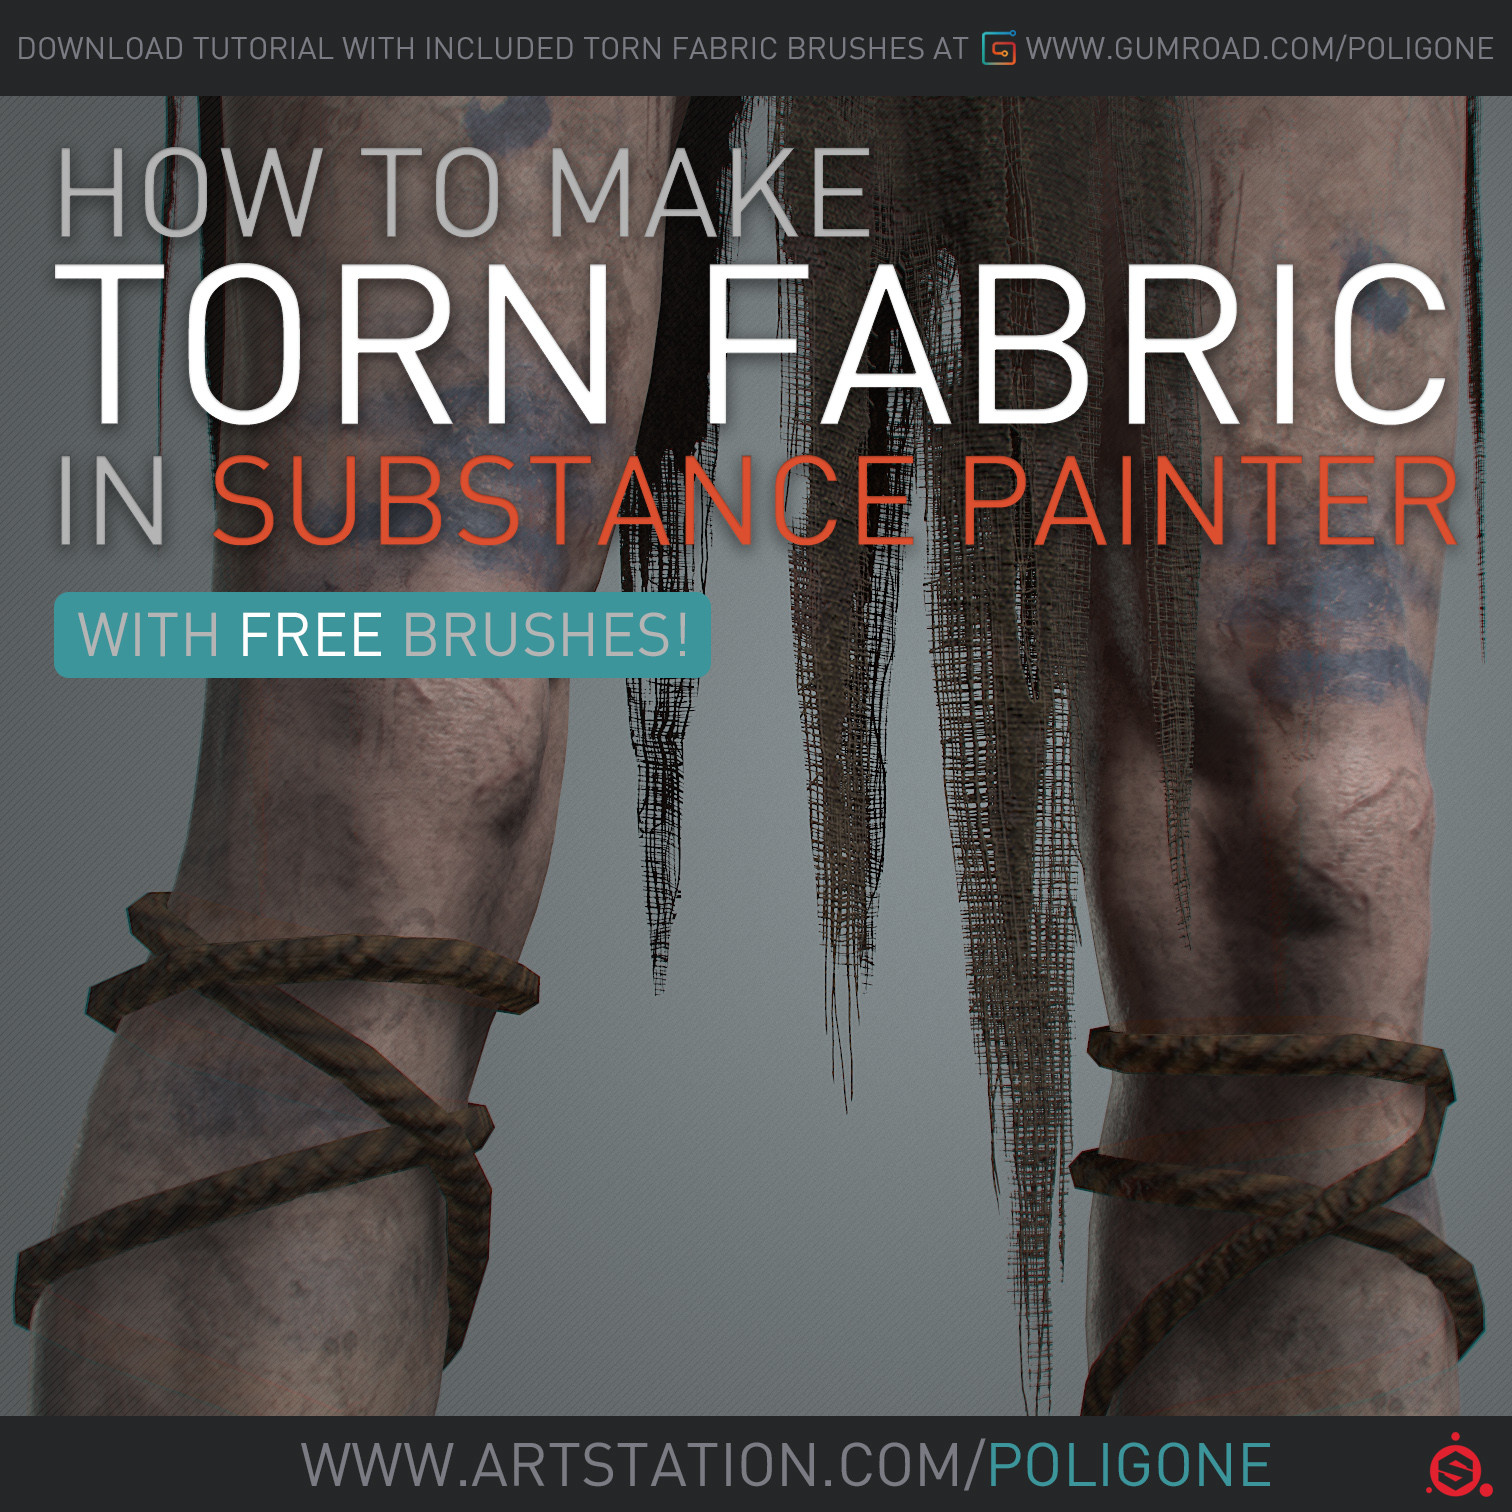 ArtStation - How to make Torn Fabric in Substance Painter